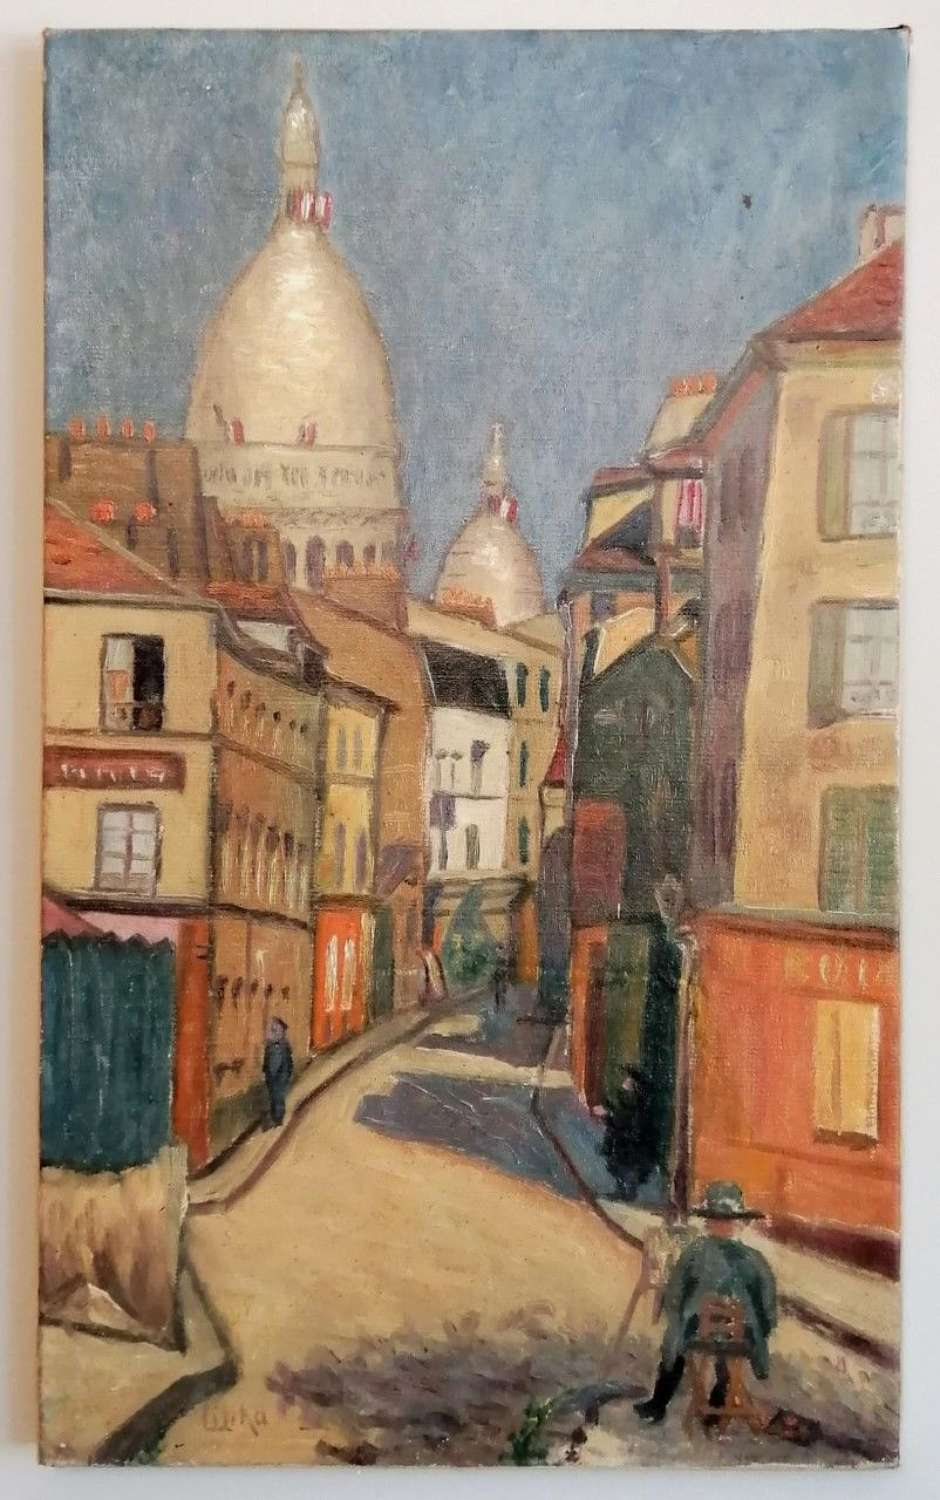 THE ARTIST AT MONTMARTRE